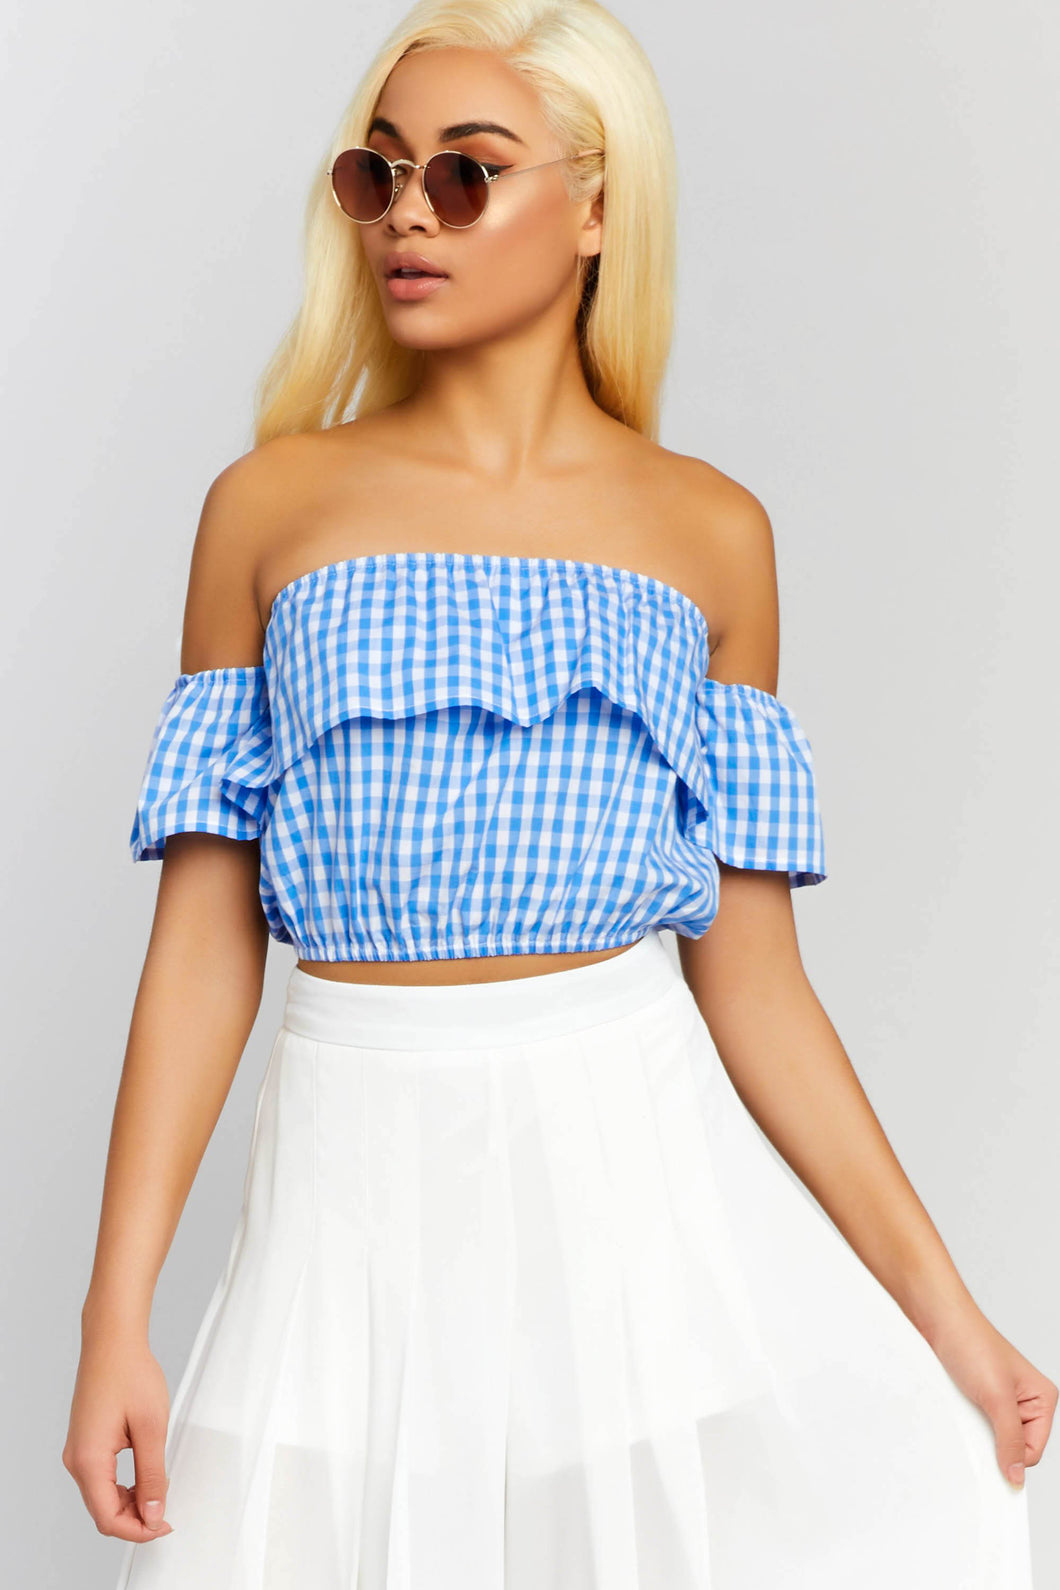 Find Me in Wonderland Gingham Top